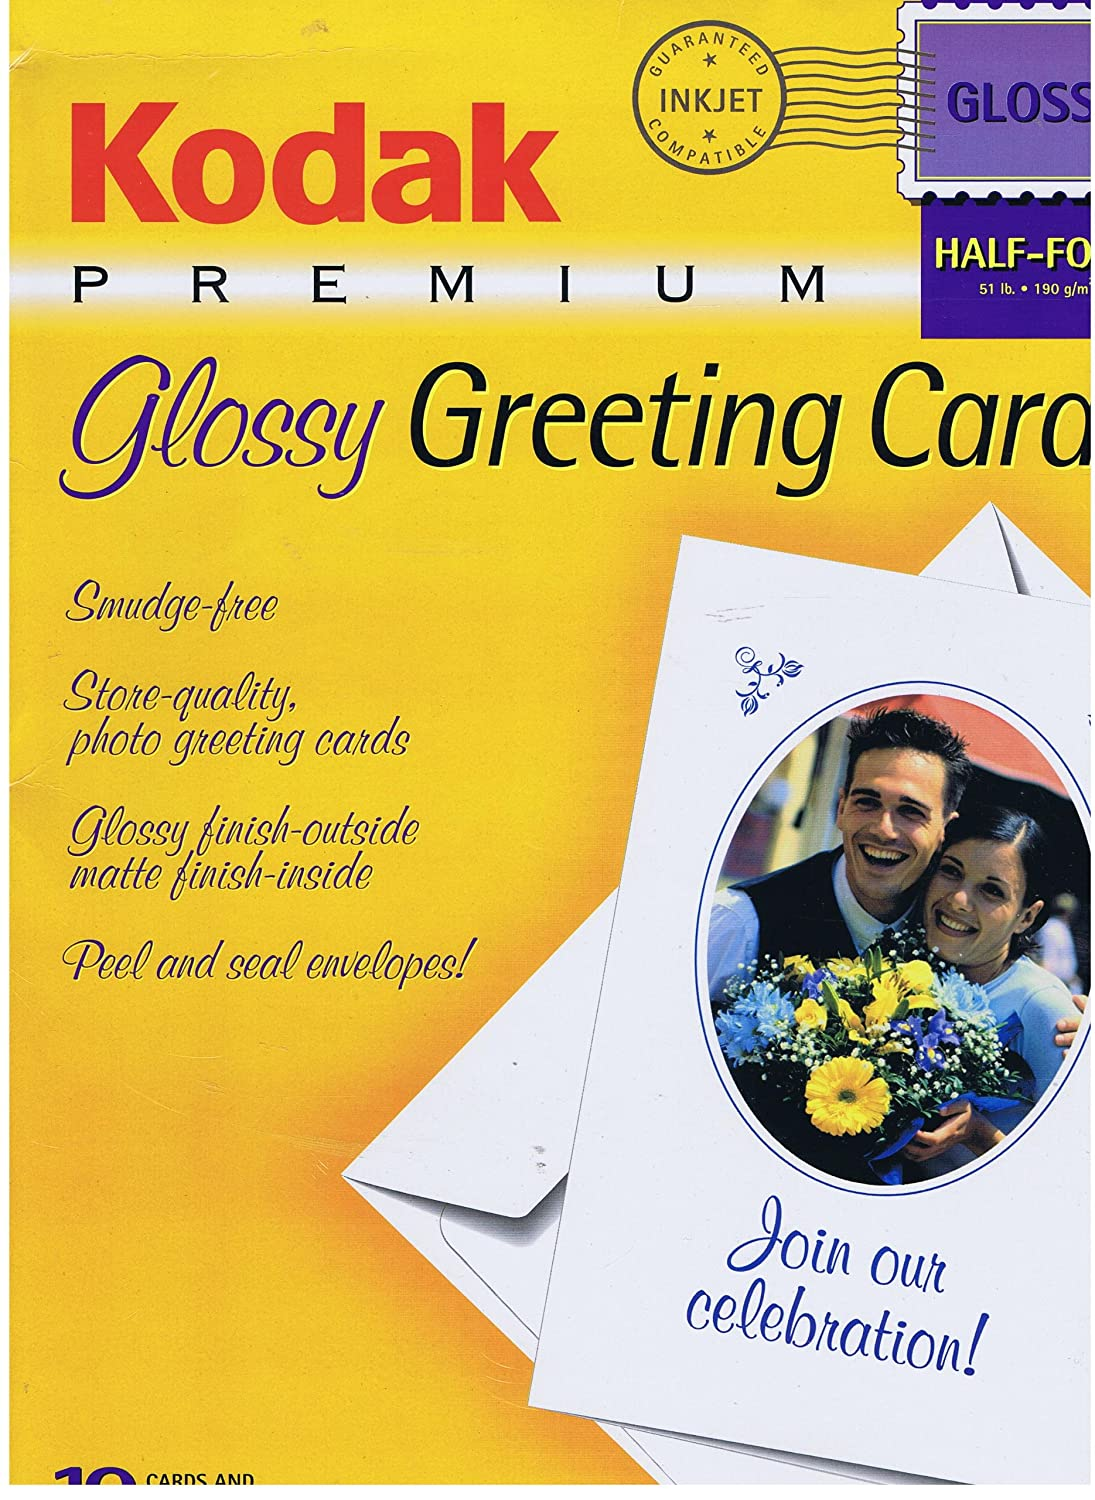 Kodak premium glossy greeting cards 10 cards and envelopes half fold kodak premium glossy greeting cards 10 cards and envelopes half fold gcp 502 cat 833 4476 amazon office products kristyandbryce Gallery